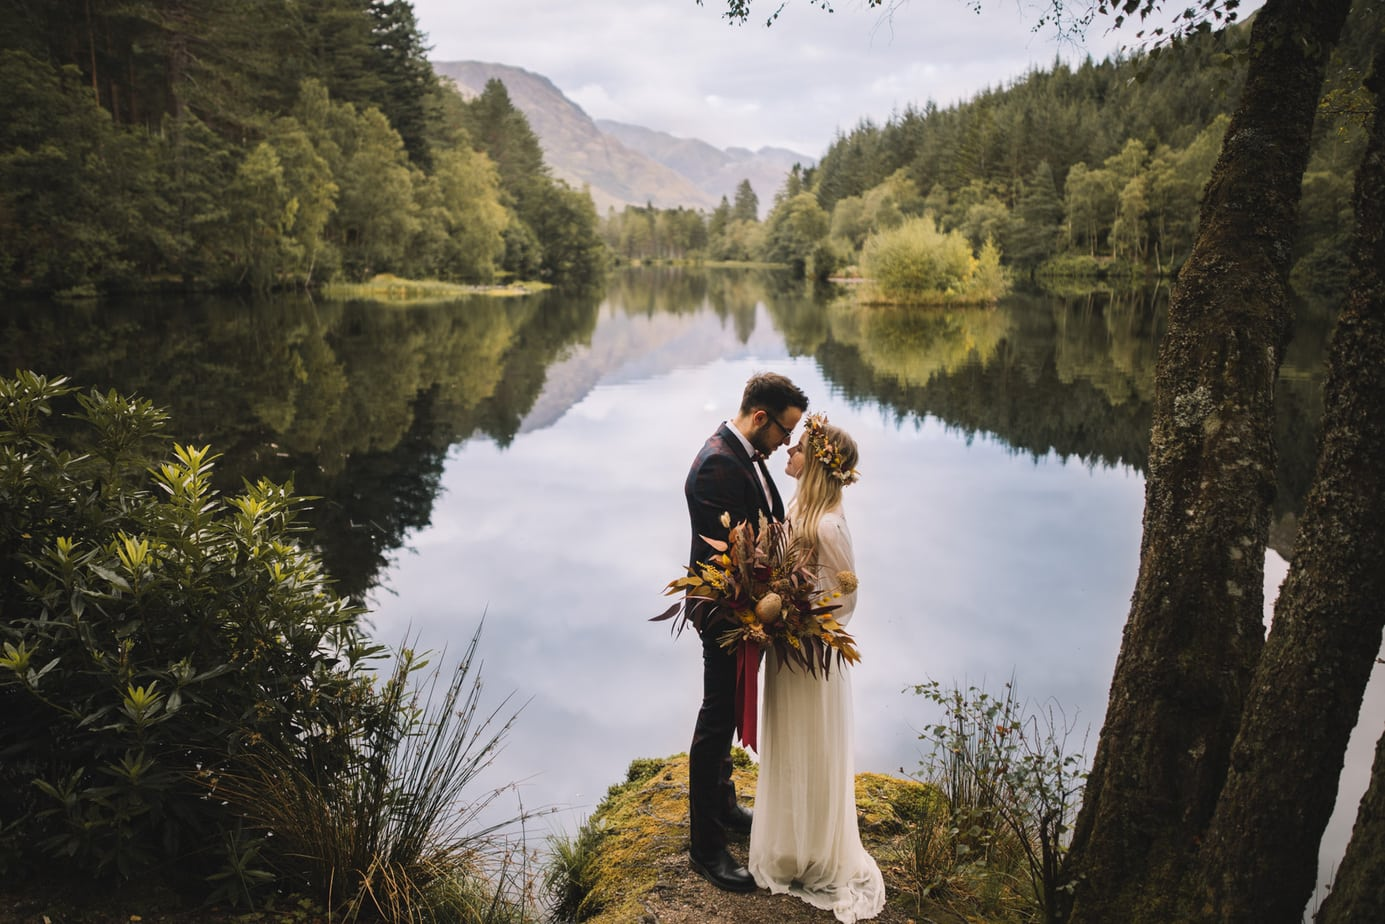 Glencoe lochan with a bride and groom stood gazing at each other. Bride is holding a bouquet of dried flowers.